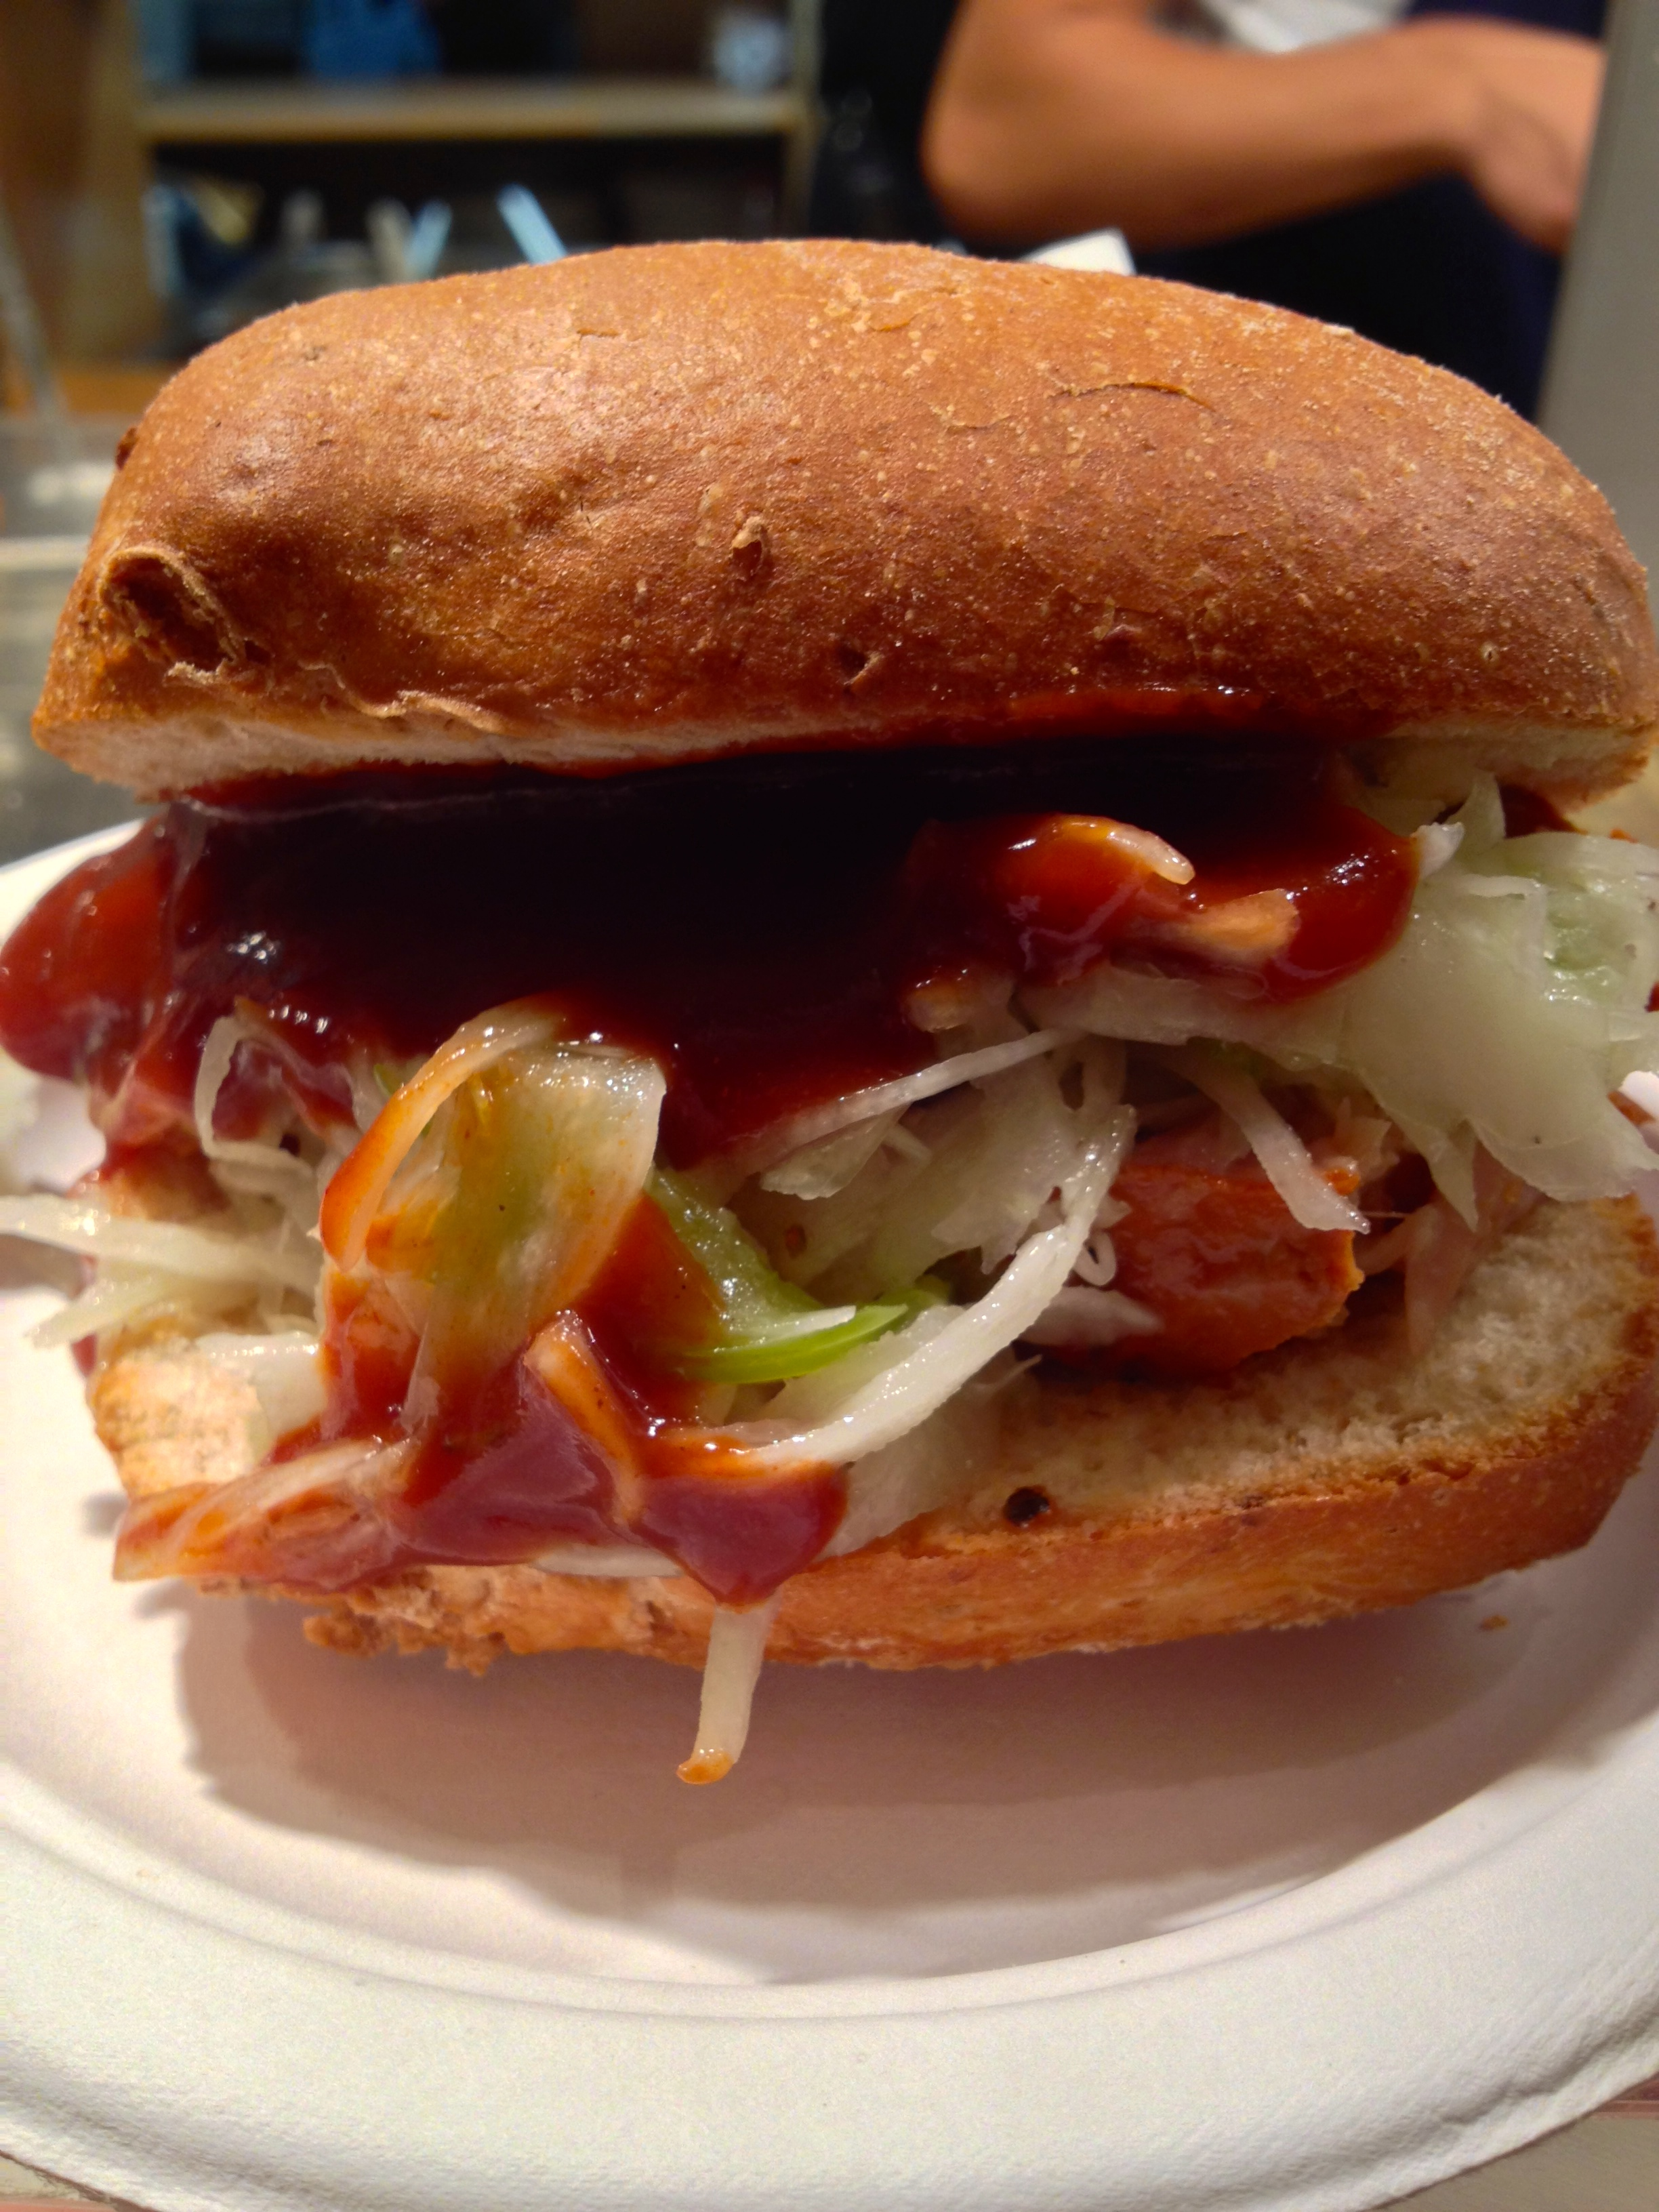 Pork sandwich with cabbage slaw and barbecue sauce